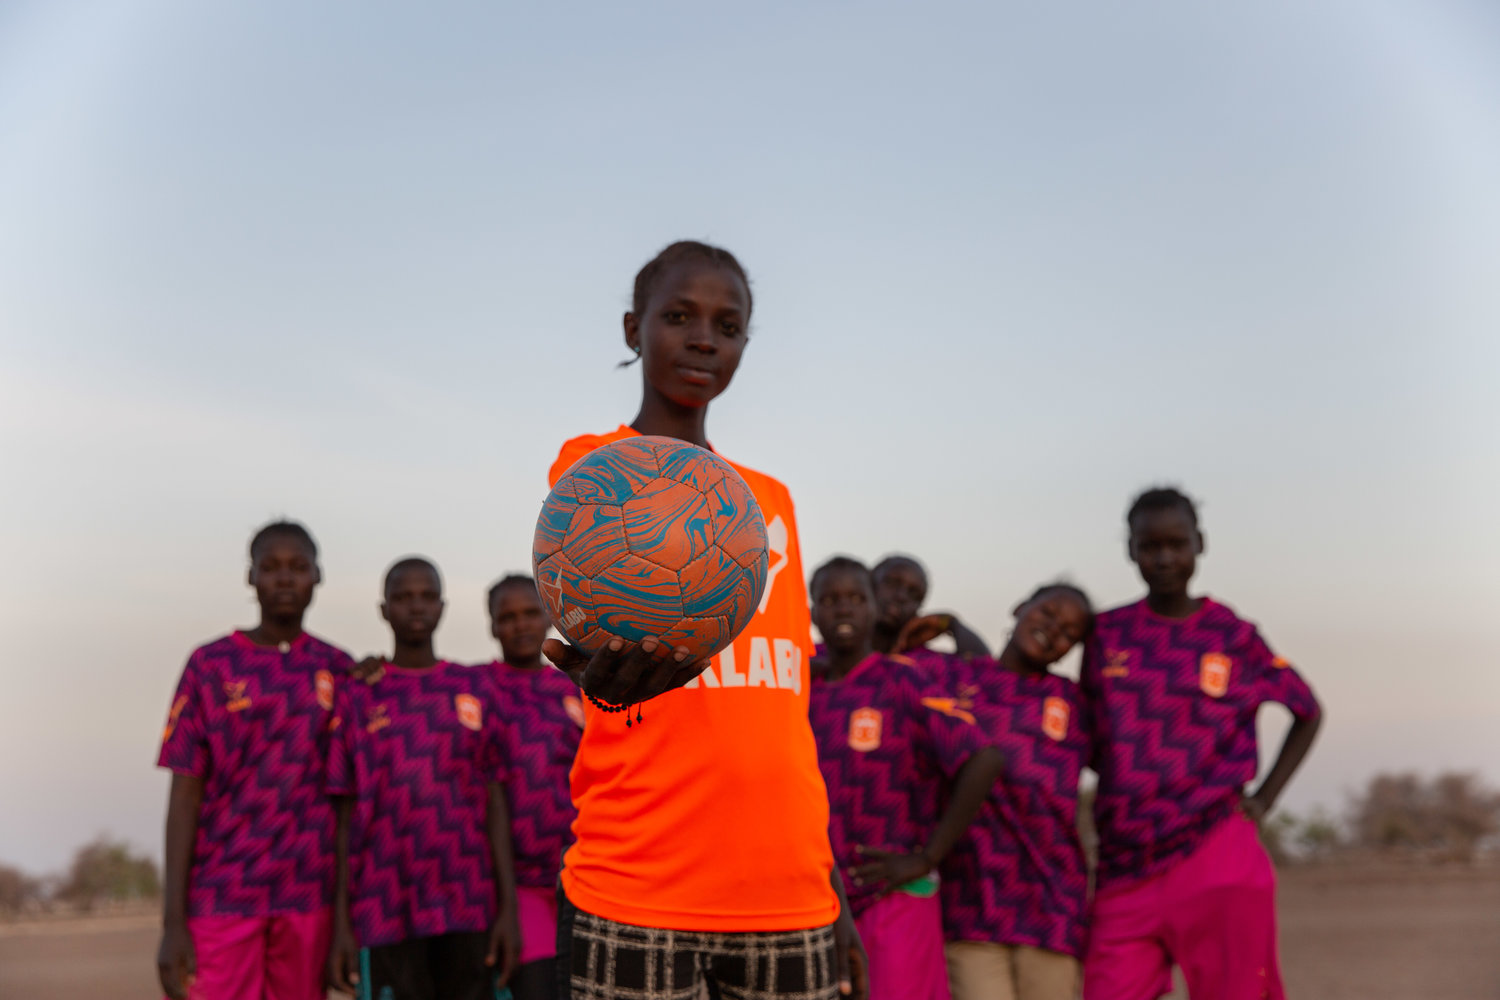 1231114c39c93e WNW MAGAZINE – Wieden+Kennedy Amsterdam Teams with Non-Profit to Empower  Young Refugees Through Sports